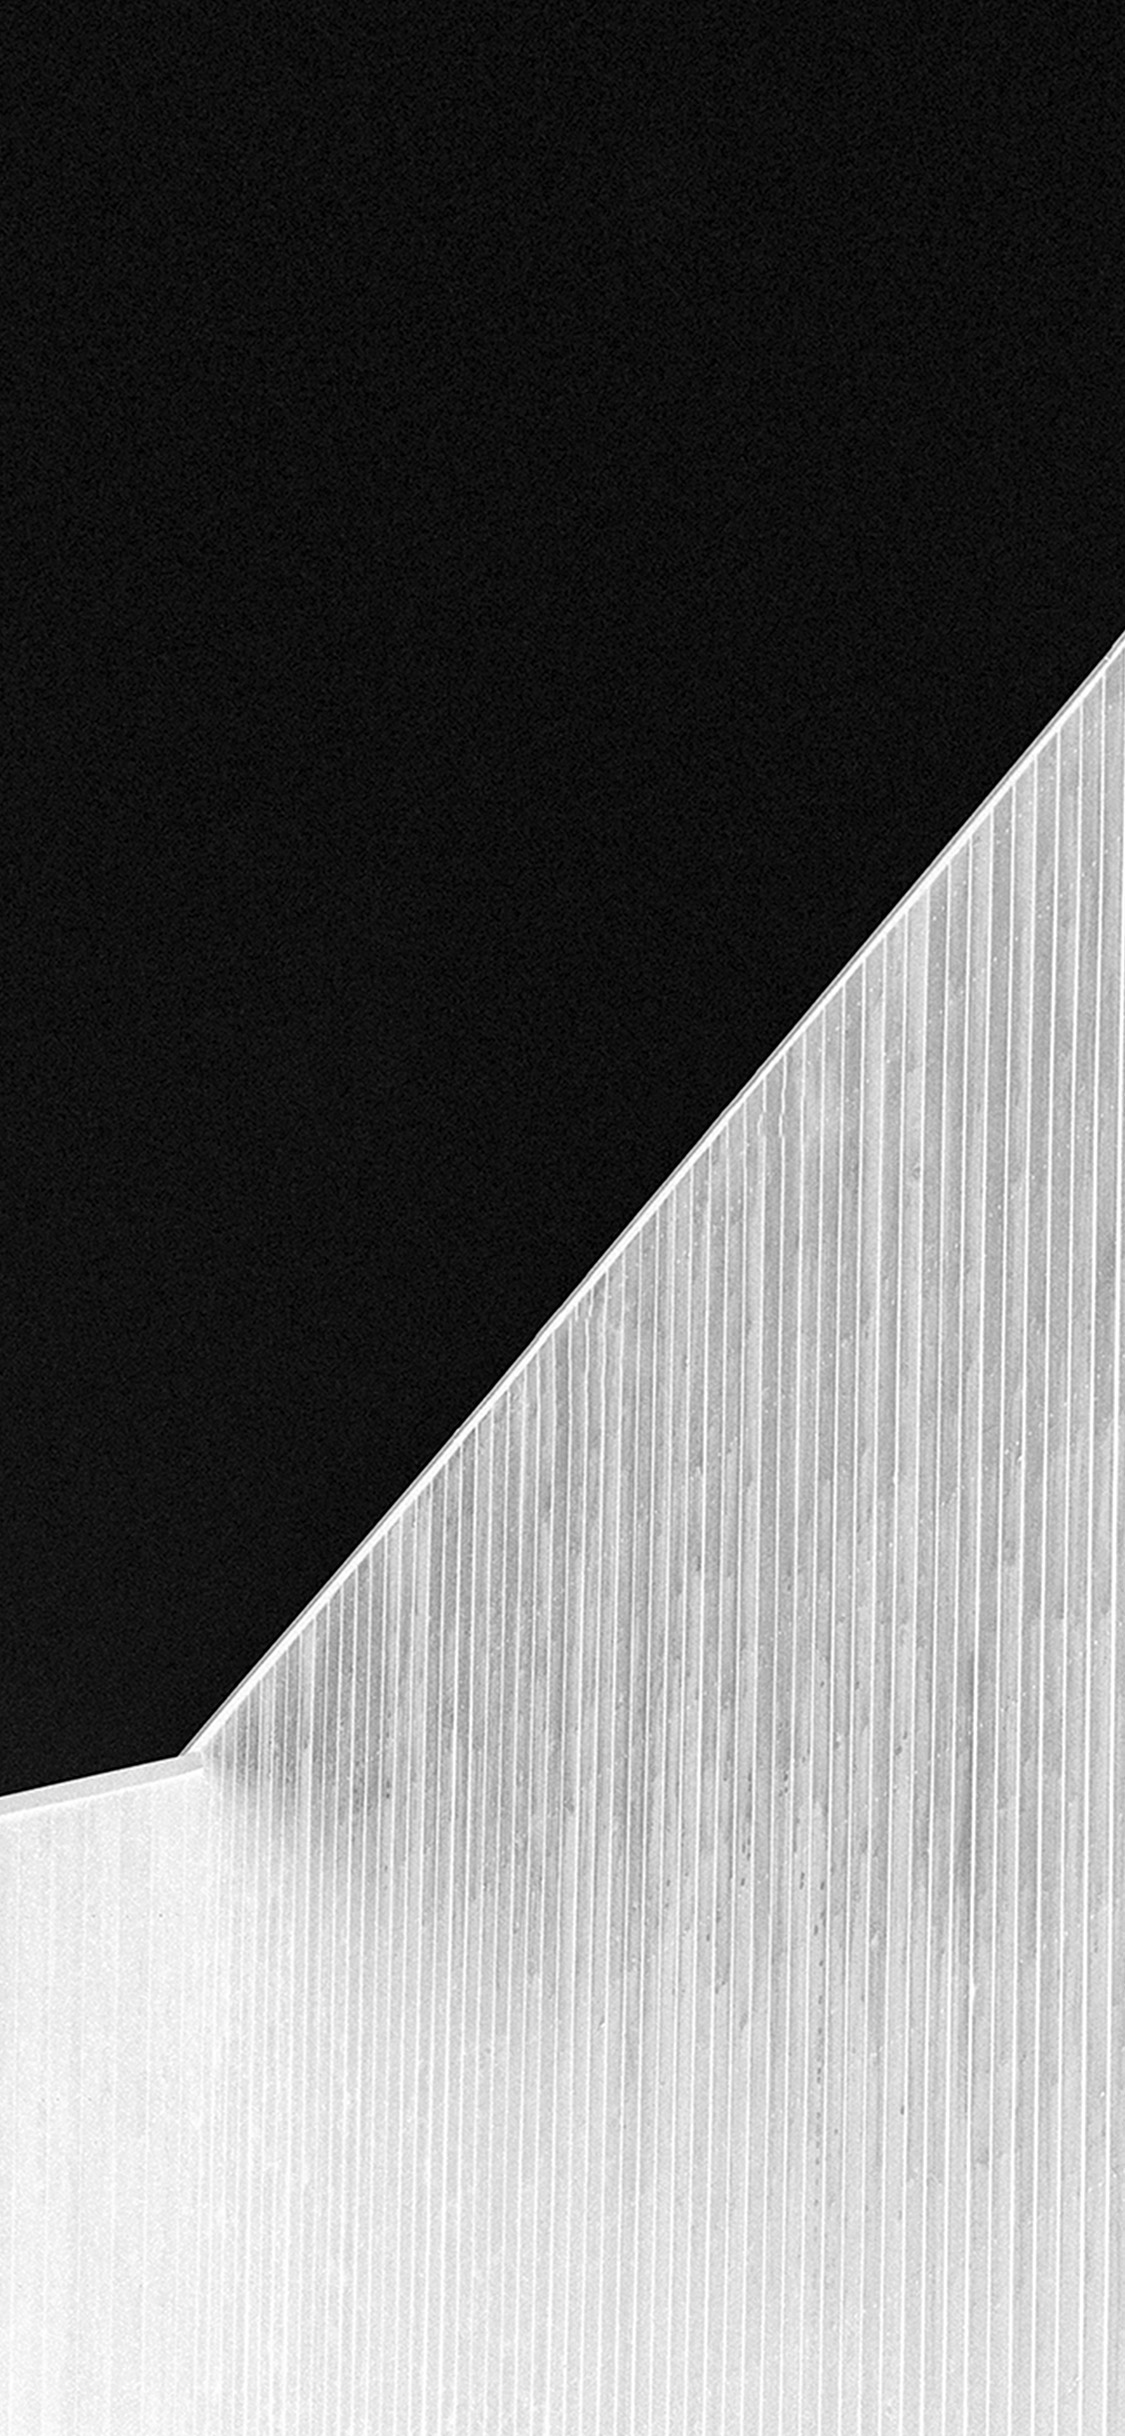 iPhonexpapers.com-Apple-iPhone-wallpaper-vz03-simple-wall-bw-white-pattern-background